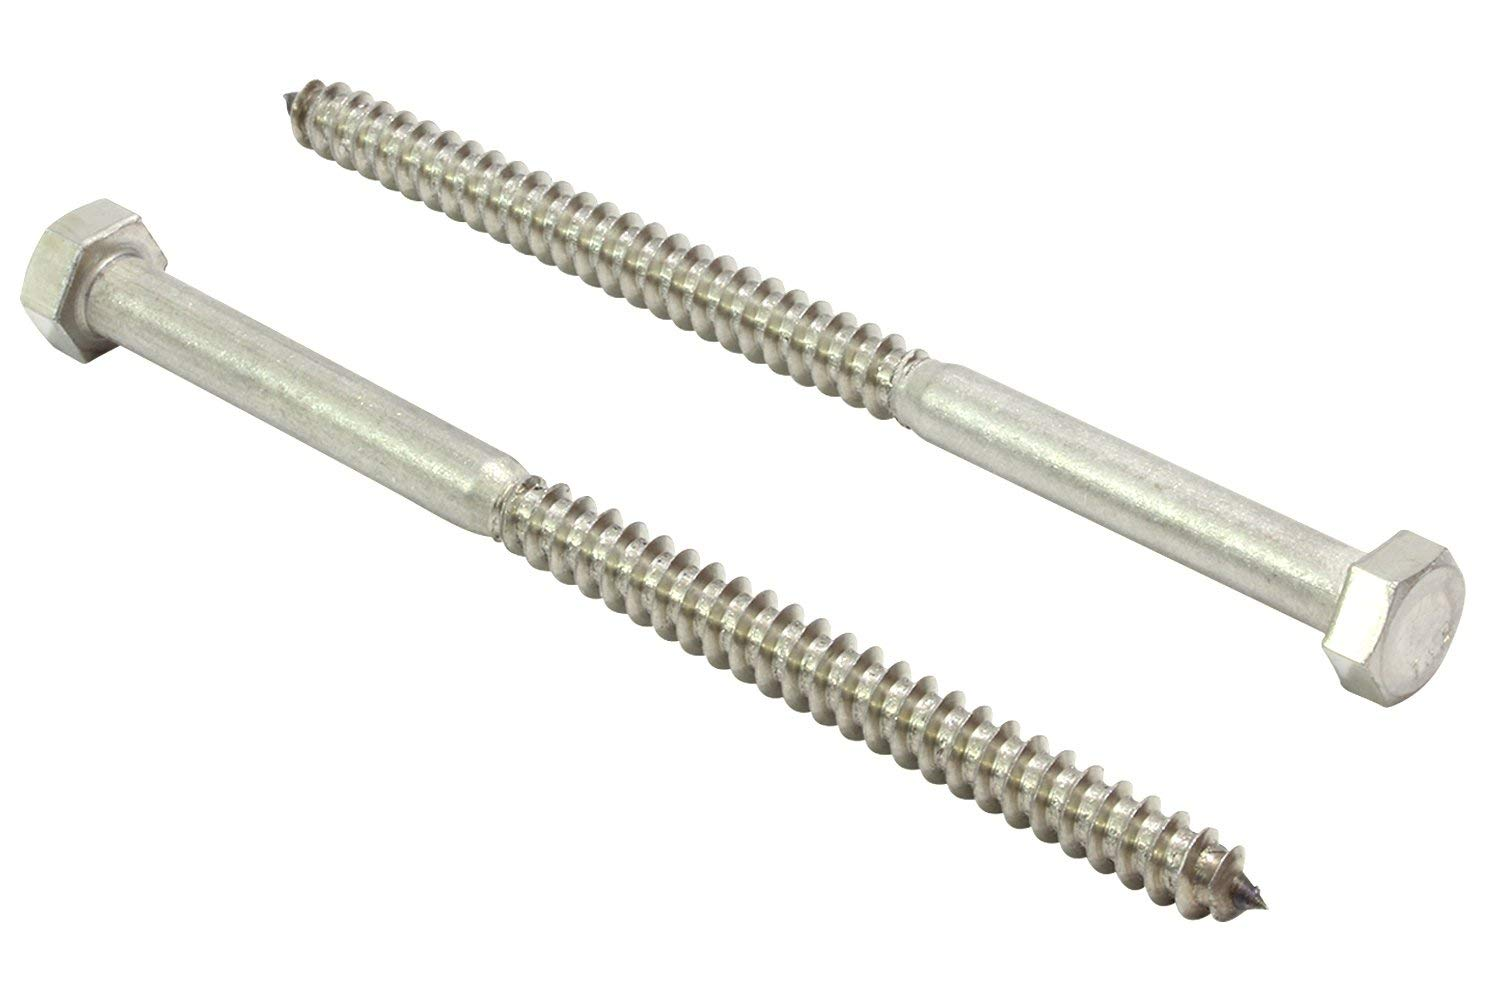 pcs 1//4 x 6 Lag Screws Hex Head Stainless Steel 18-8//304 Set #RD-2818FST Warranity by Pr-Mch Package of 25